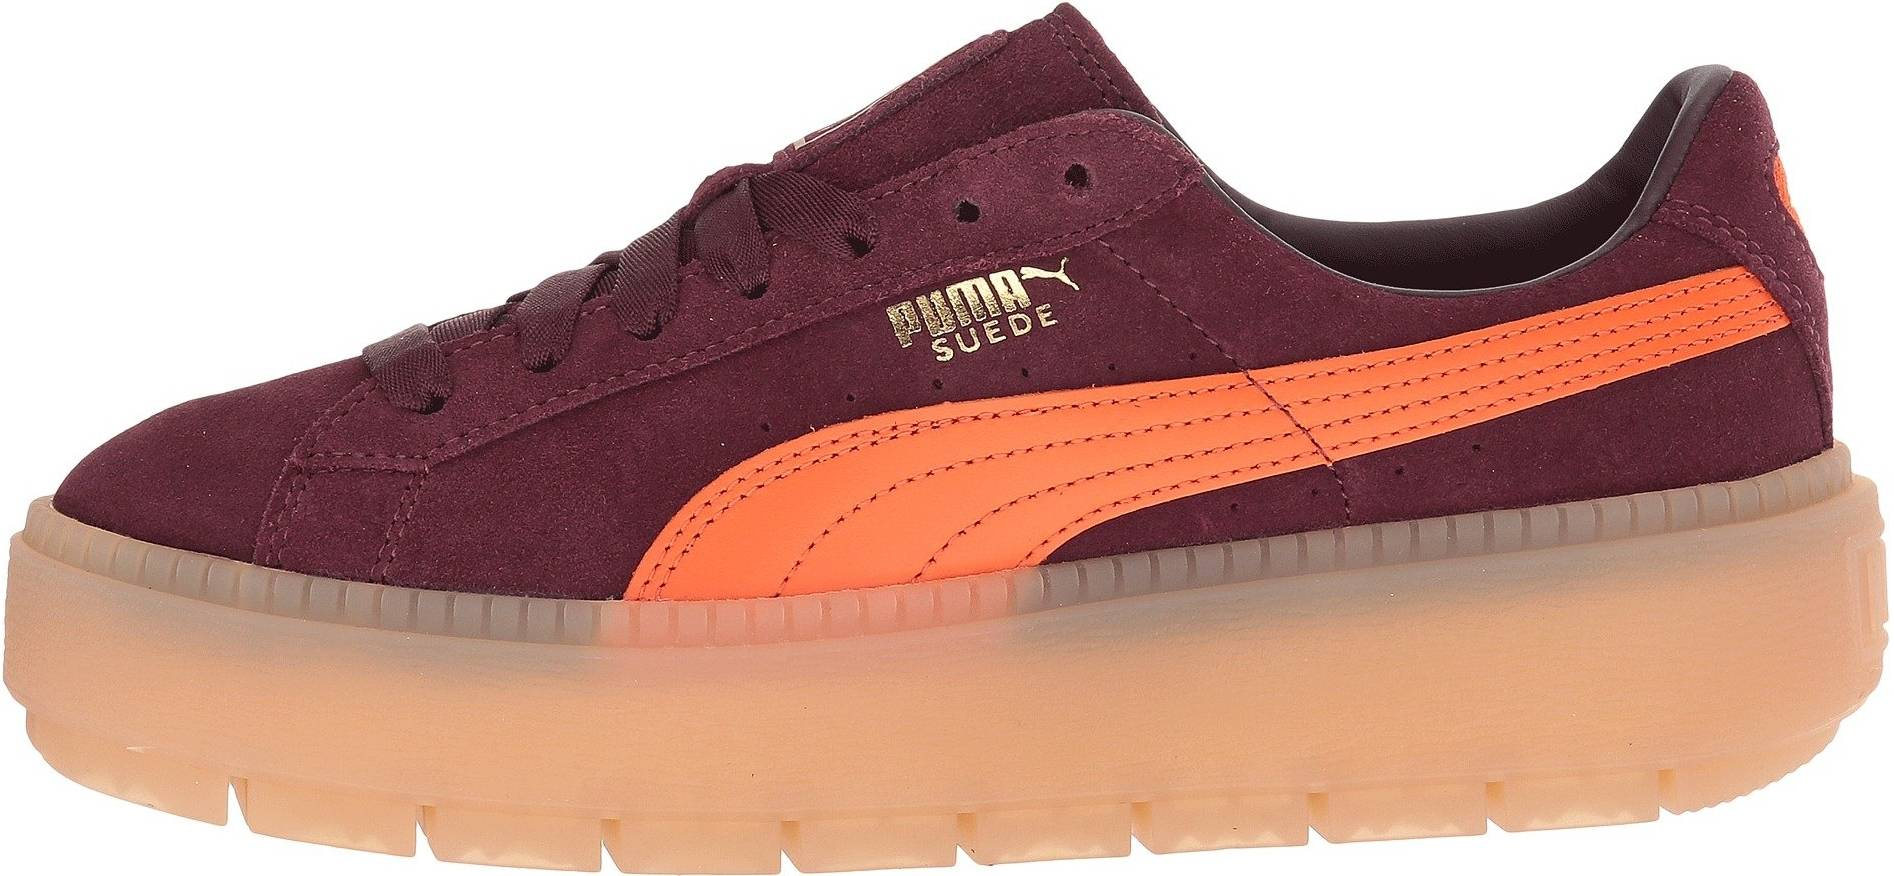 Puma Platform Trace Block sneakers in red (only $30)   RunRepeat